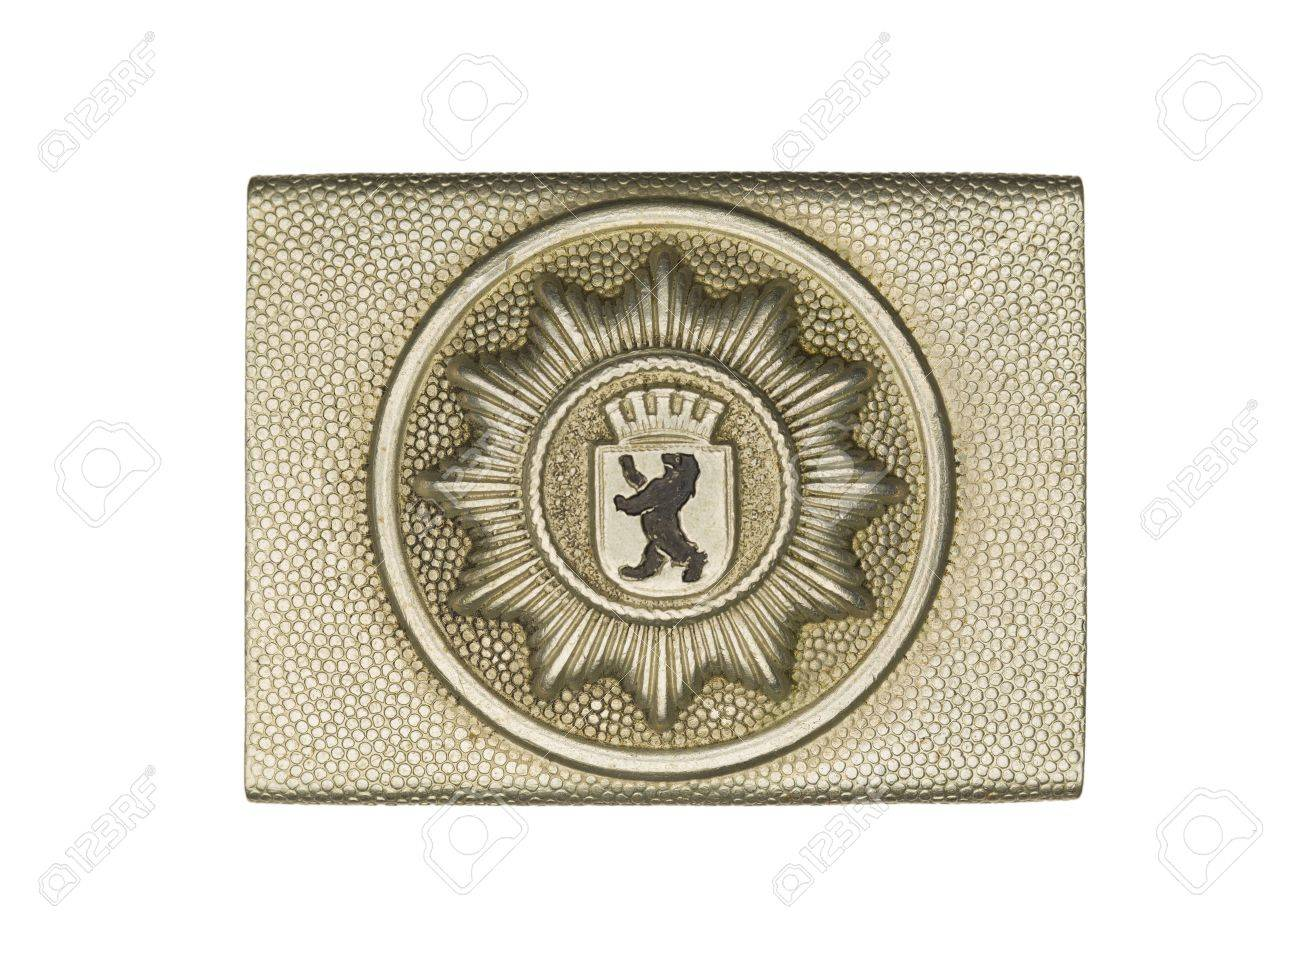 Close-up shot of a army belt buckle with lion symbol on it. Stock Photo - 17251439